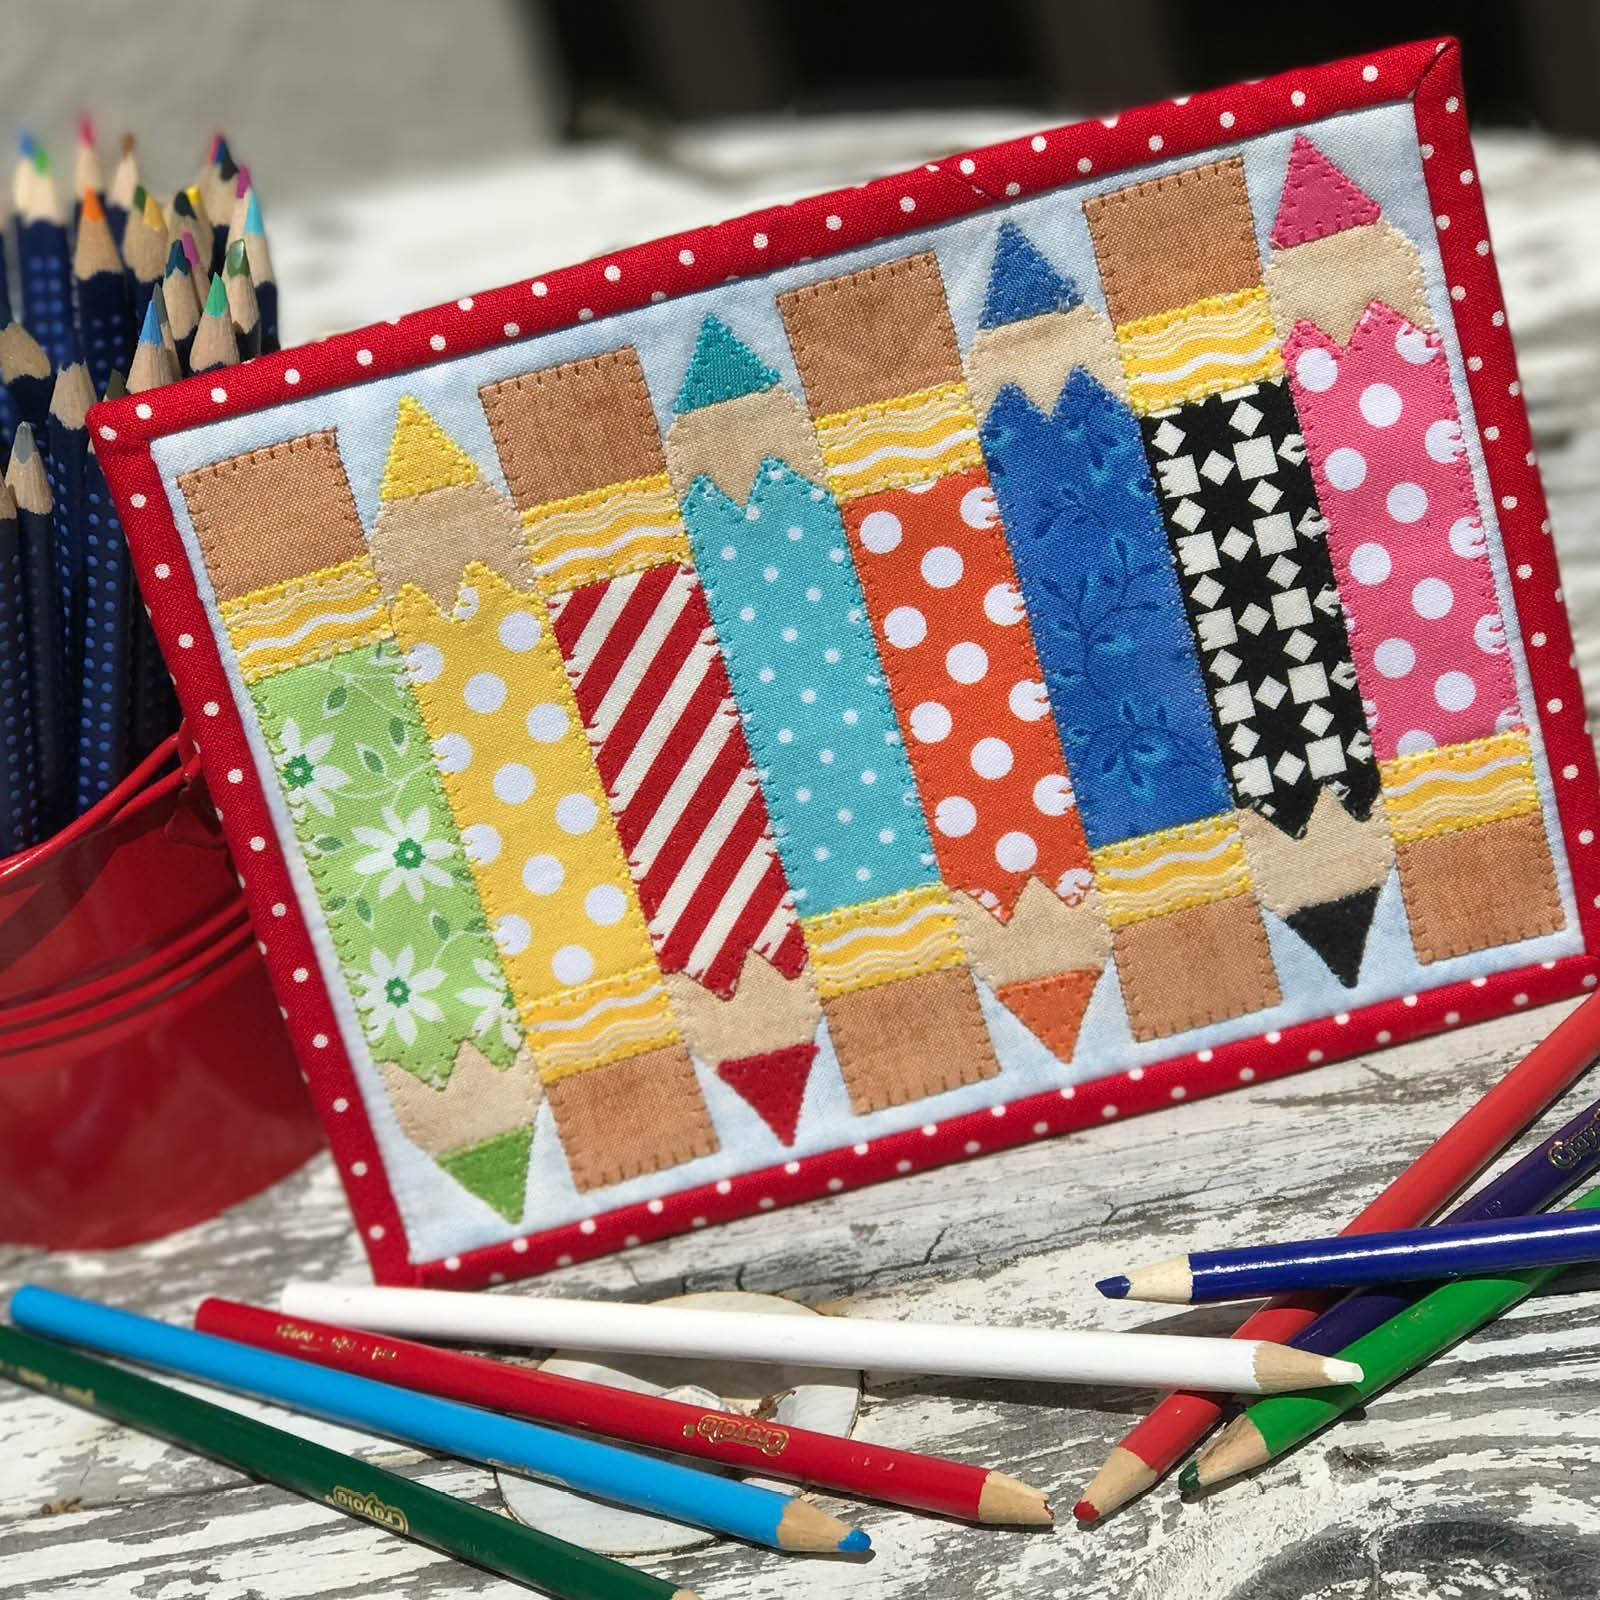 Pencil Box Mug Rug Free Pattern by Stitches of Love for Teachers Day